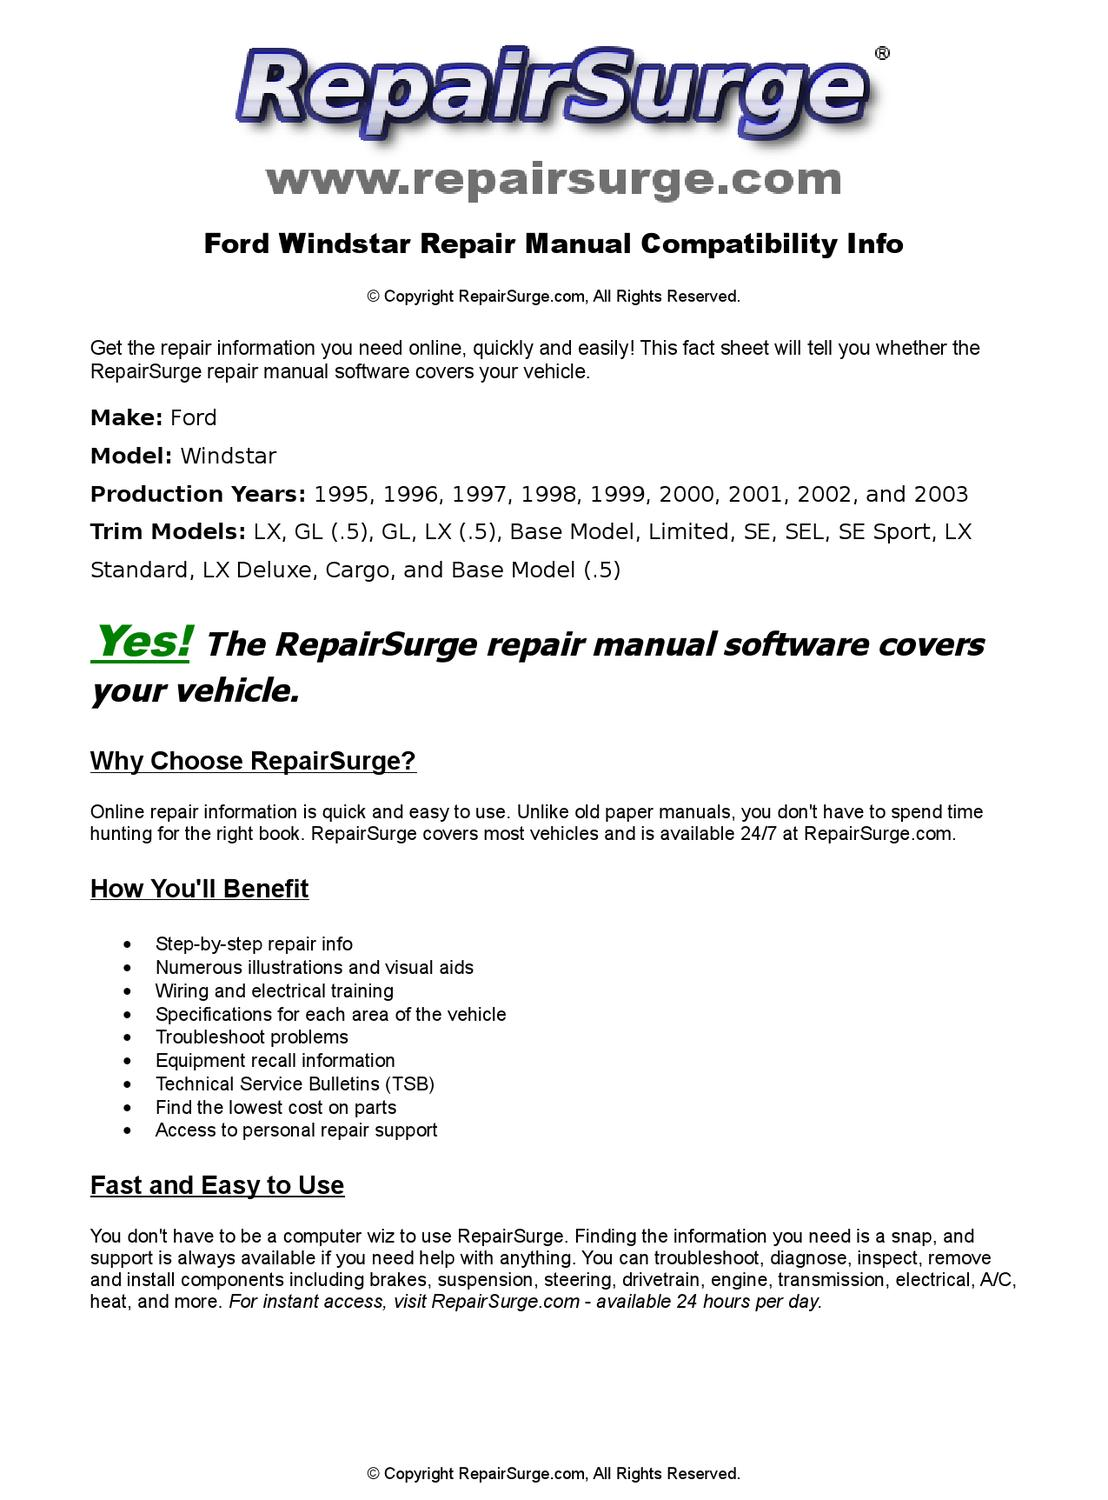 Ford Windstar Online Repair Manual For 1995, 1996, 1997, 1998, 1999, 2000,  2001, 2002, and 2003 by RepairSurge - issuu